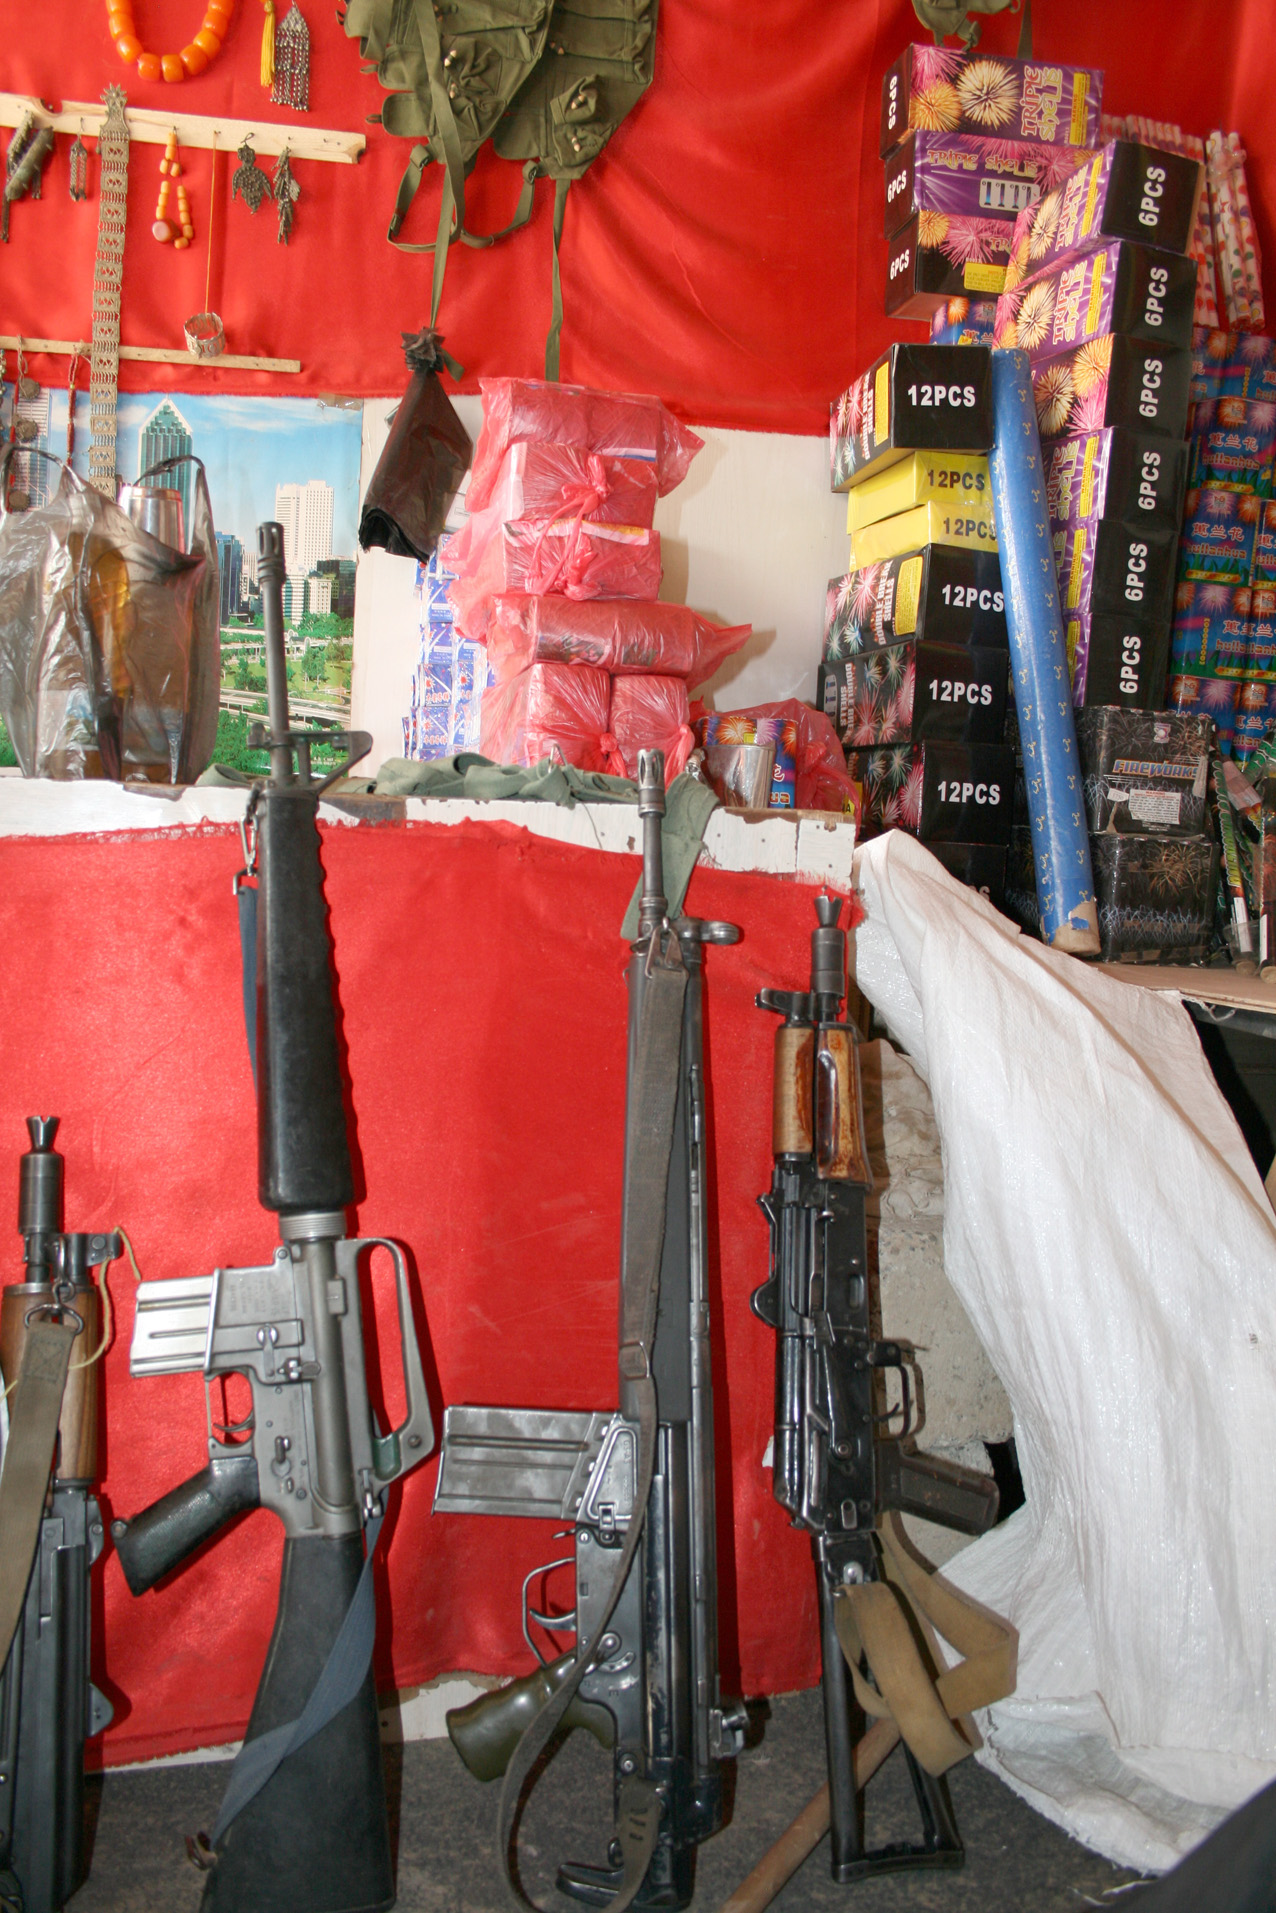 Rifles on display at a gun store in Amran, a conflict-affected governorate in the north of Yemen